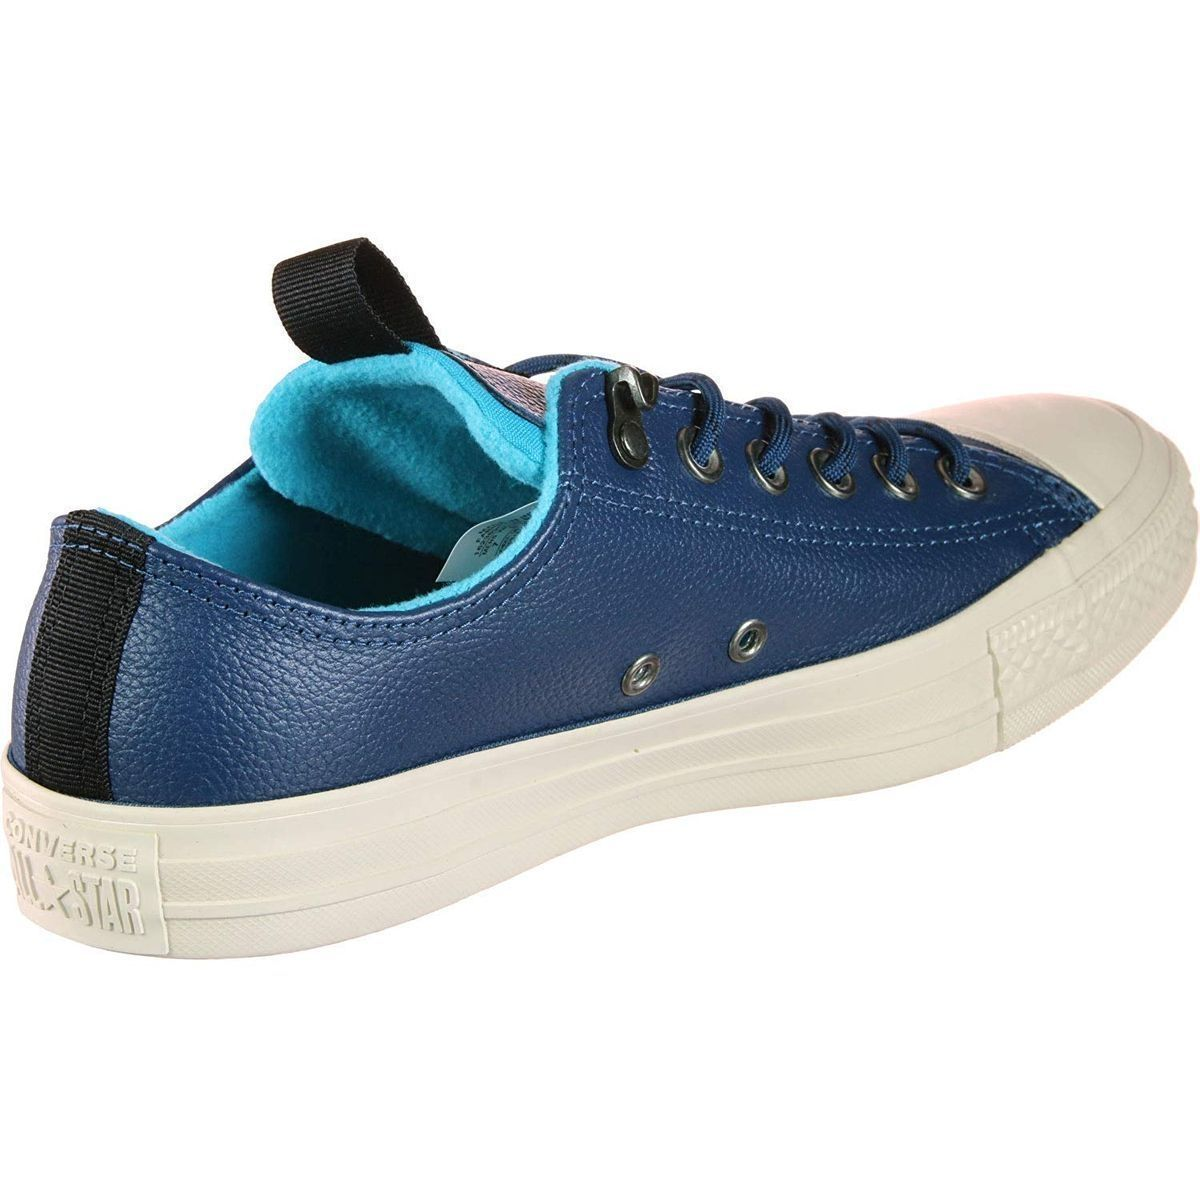 Converse homme chuck taylor all star leather   ox bleu1127601_3